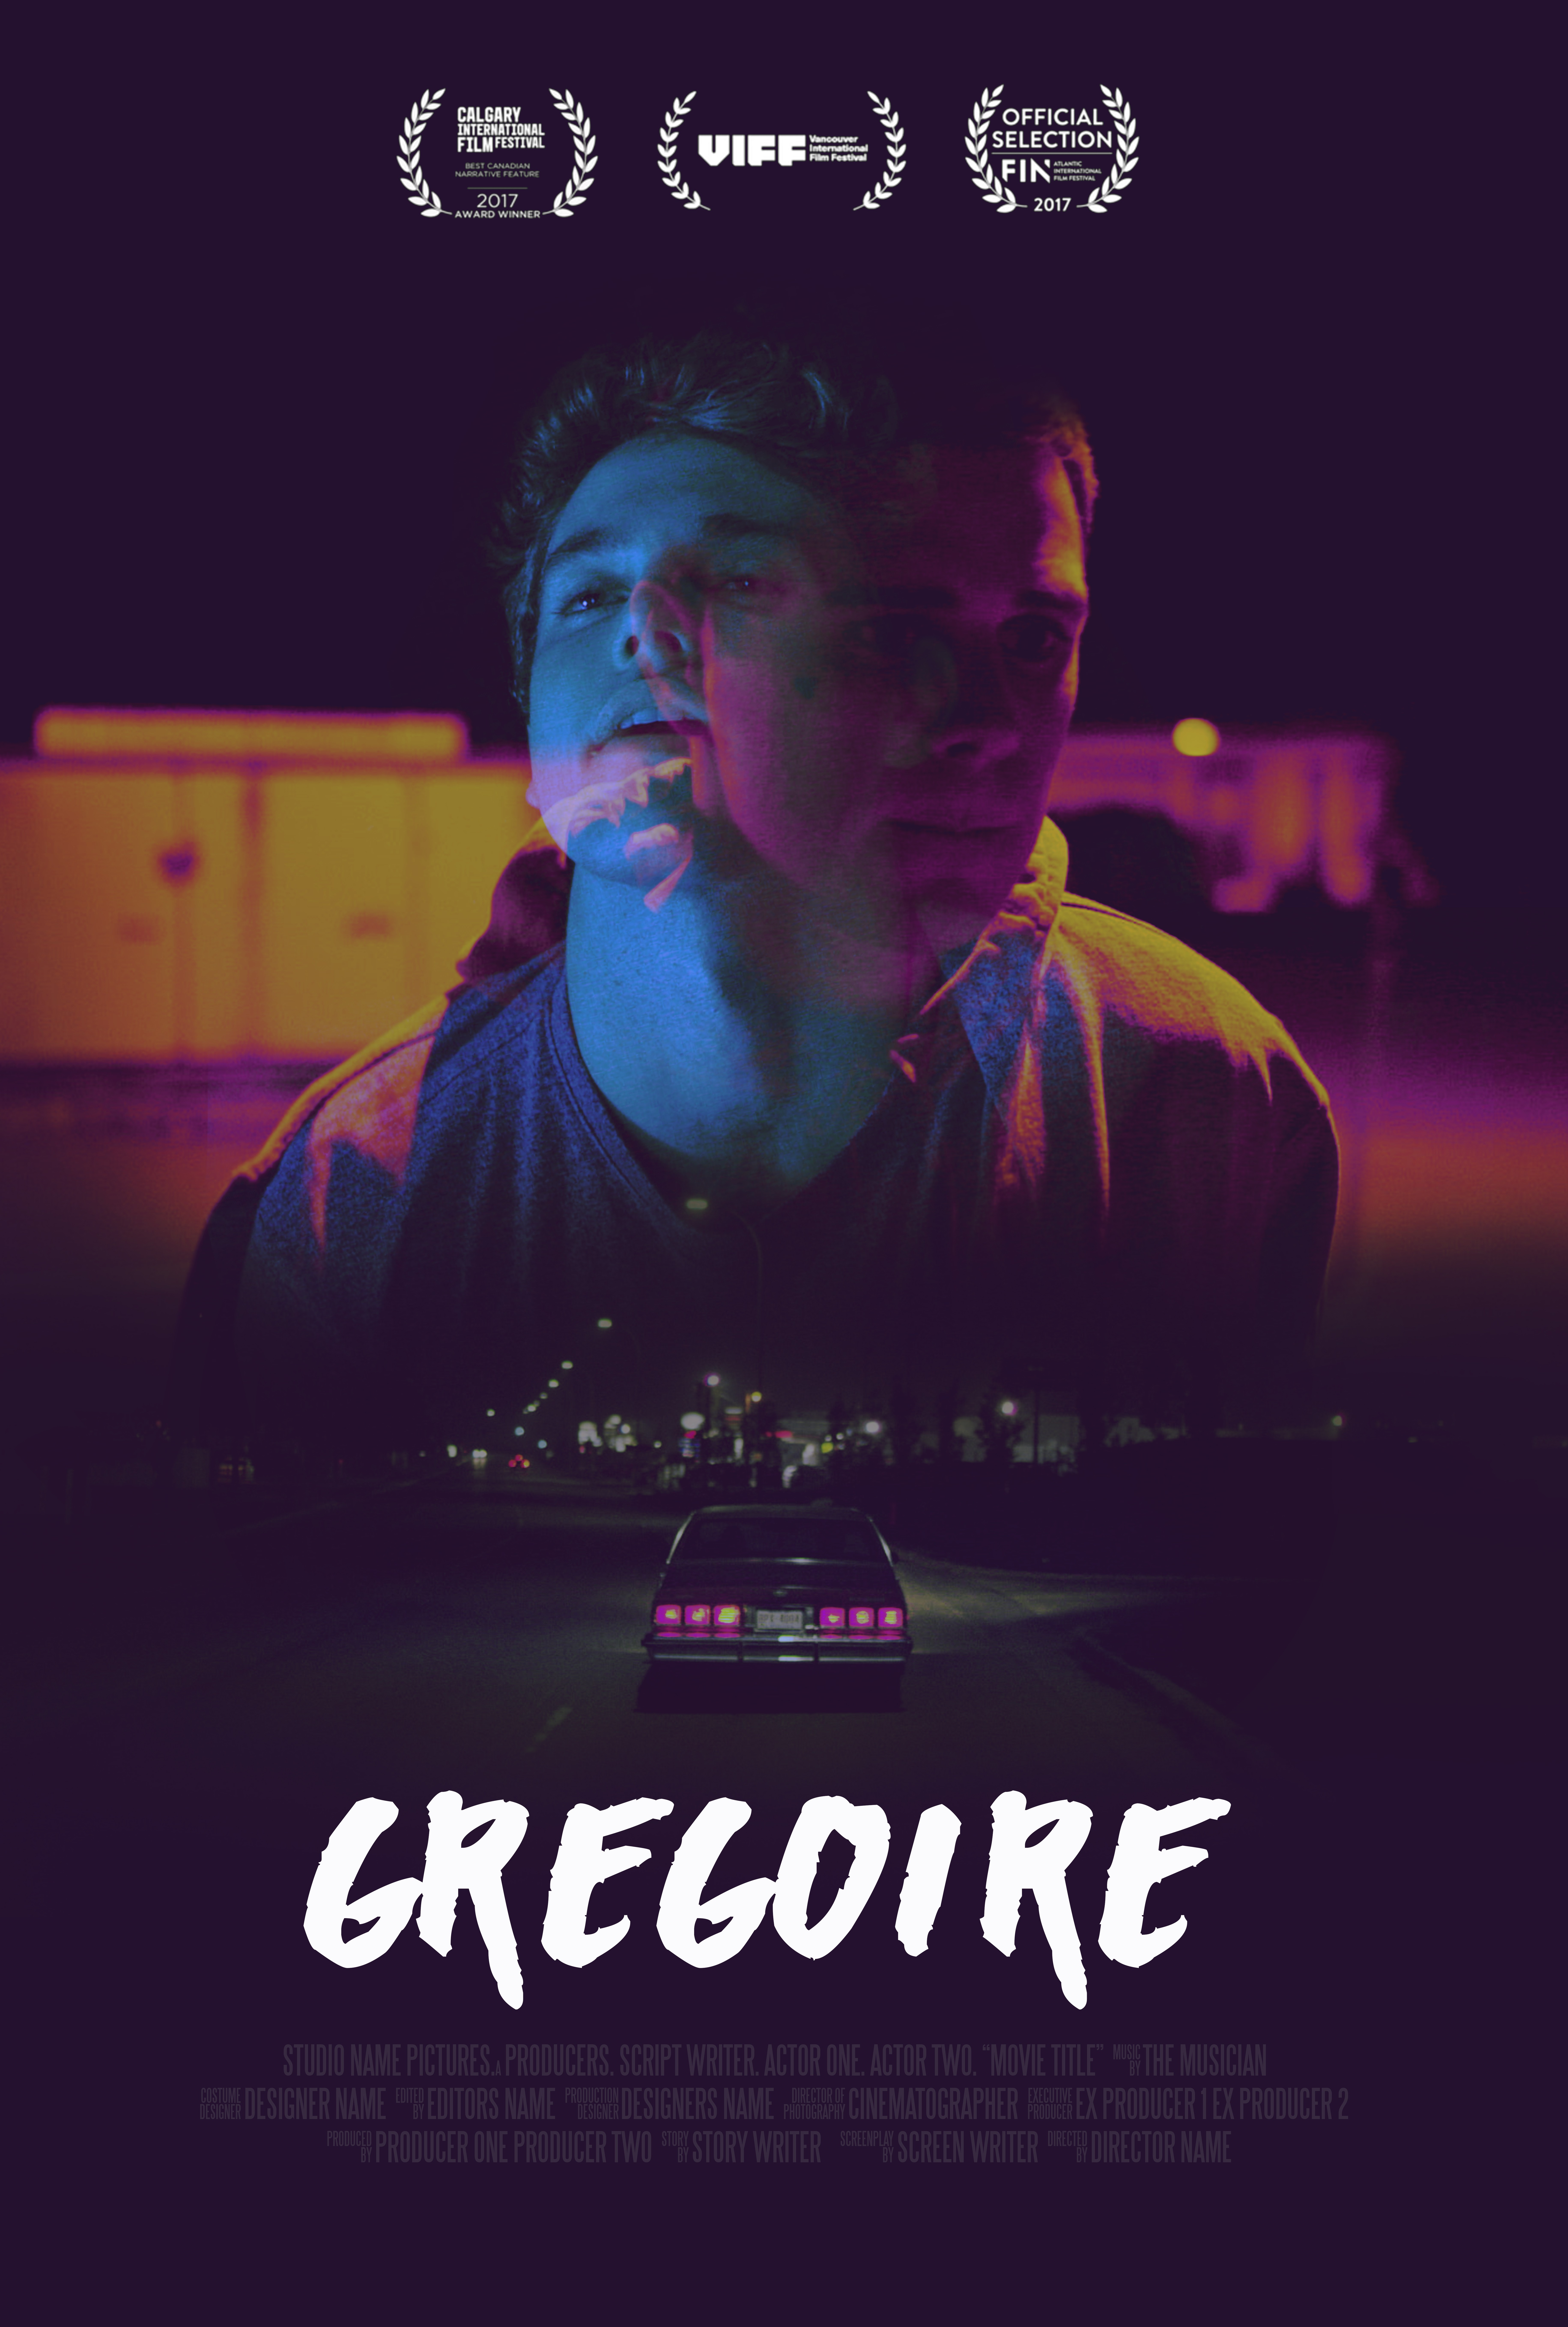 Make a cool poster for GREGOIRE a new movie release